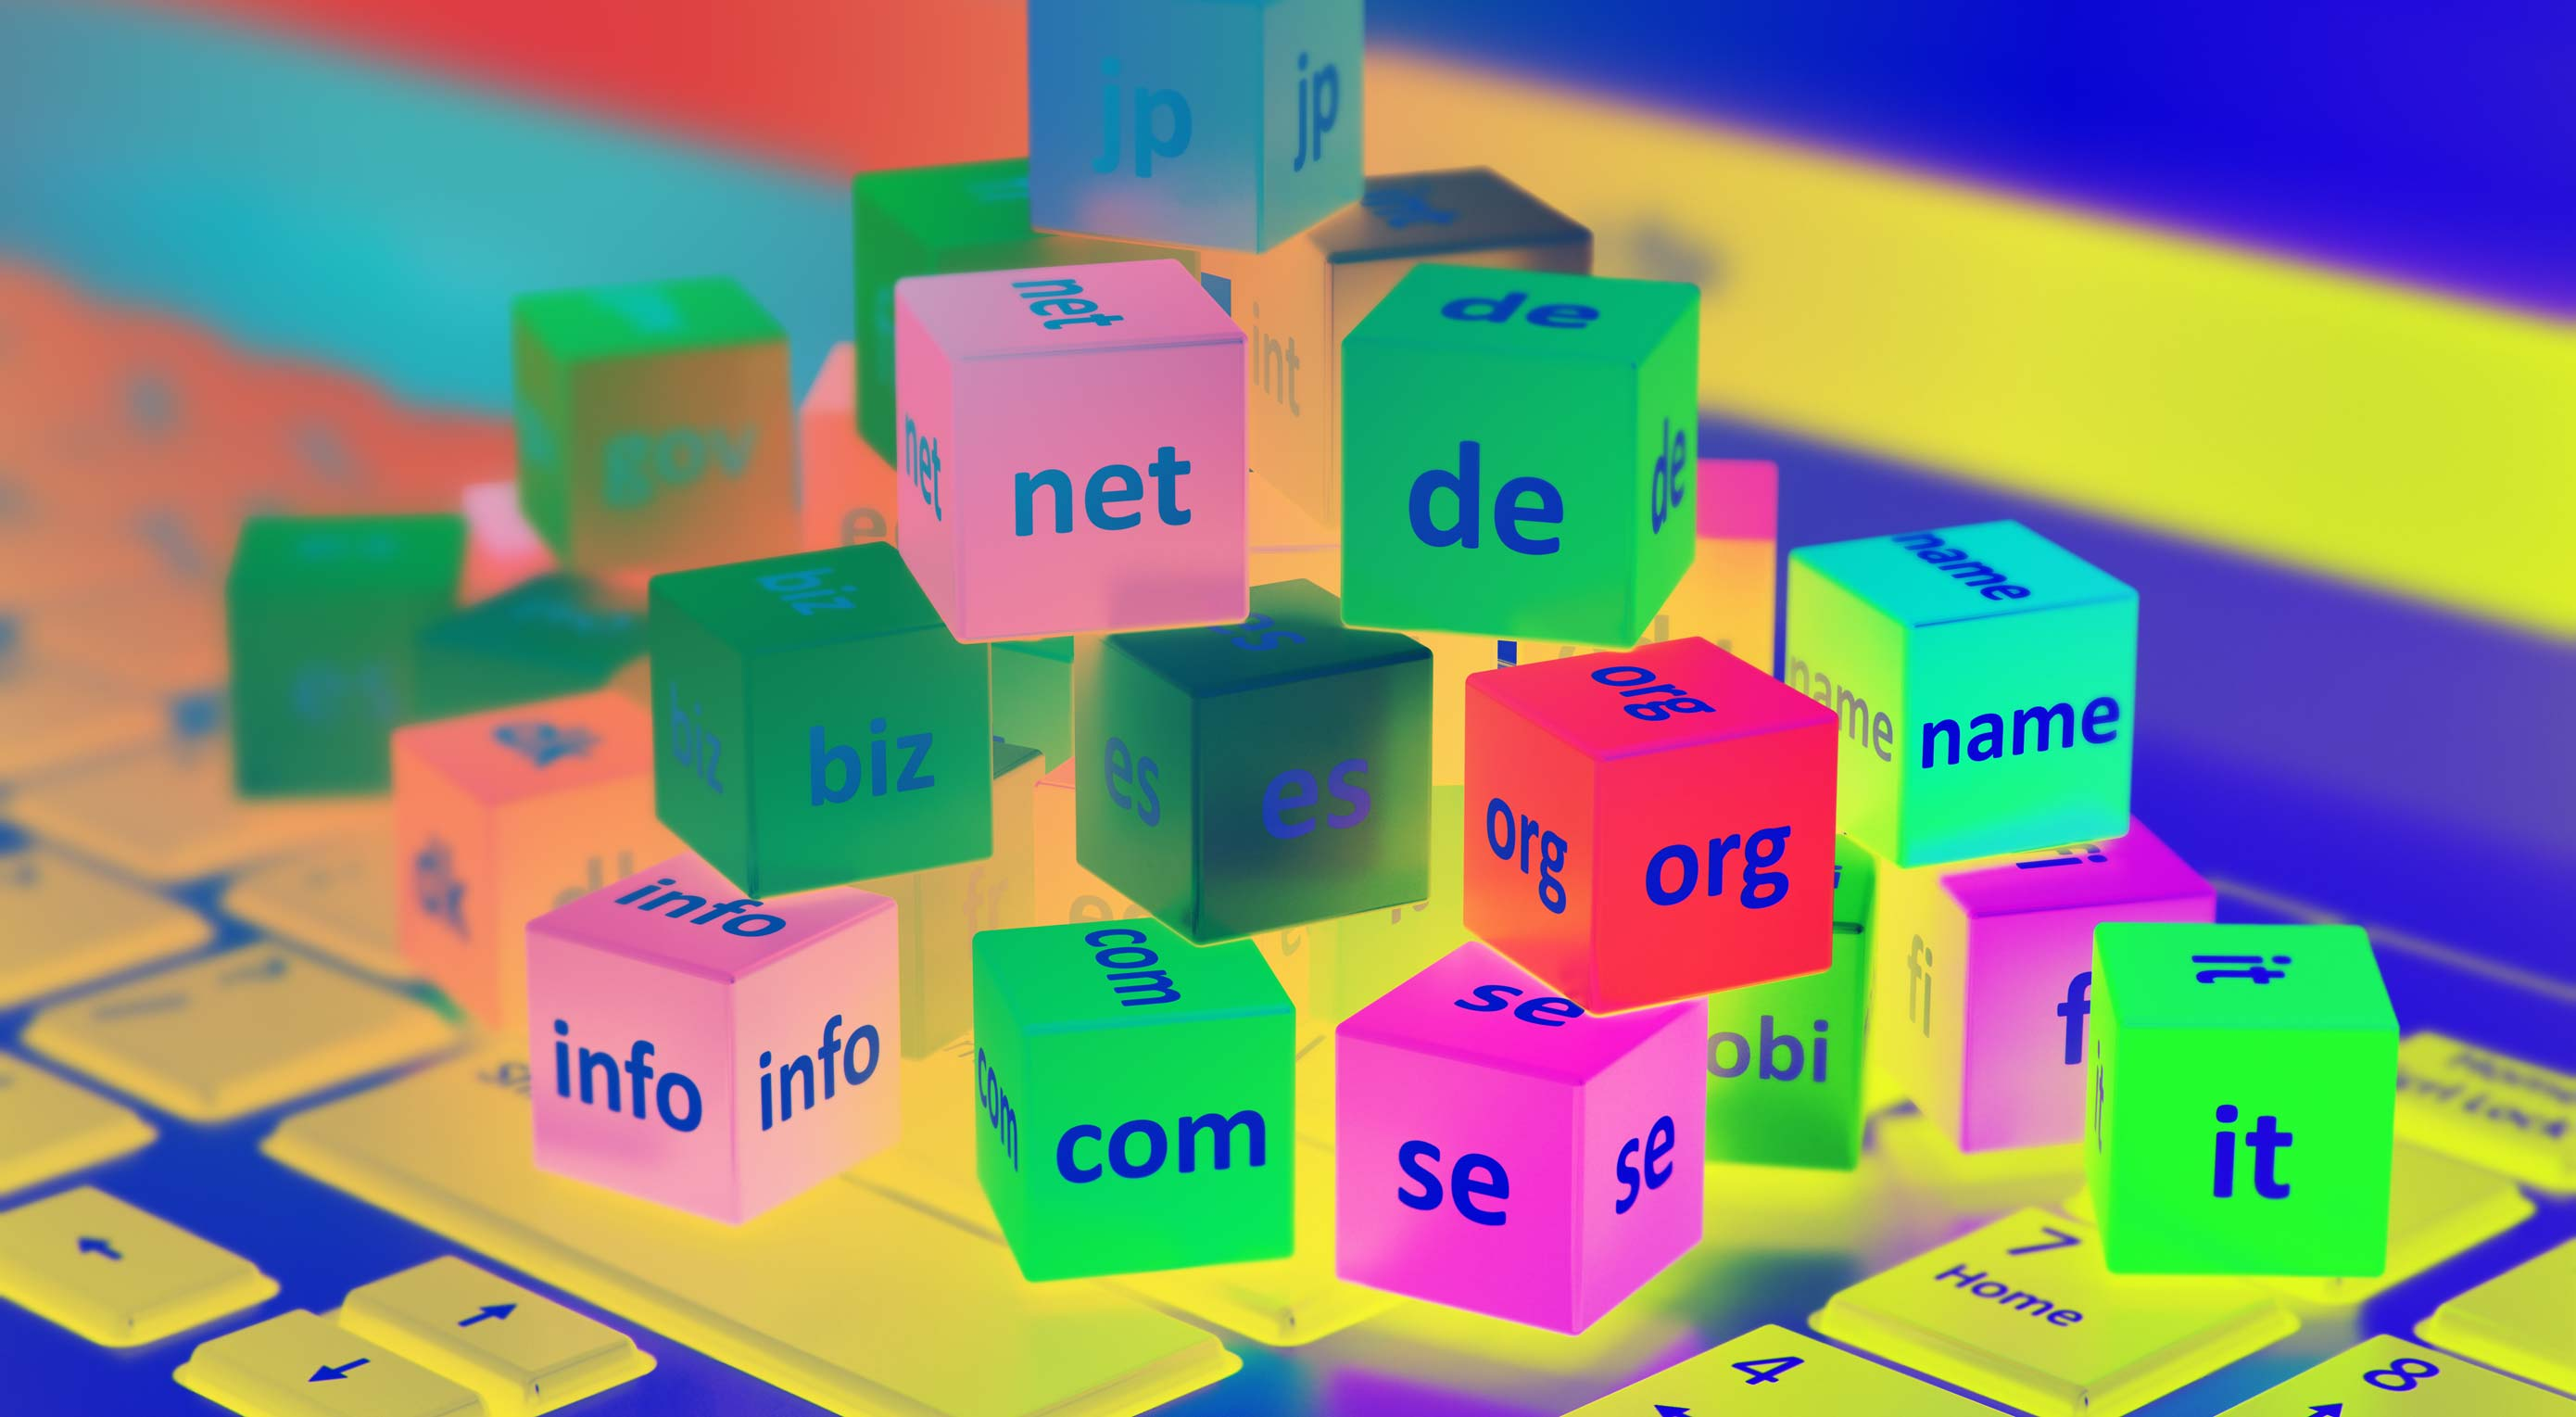 30+ New Top Level Domains for Designers and Developers